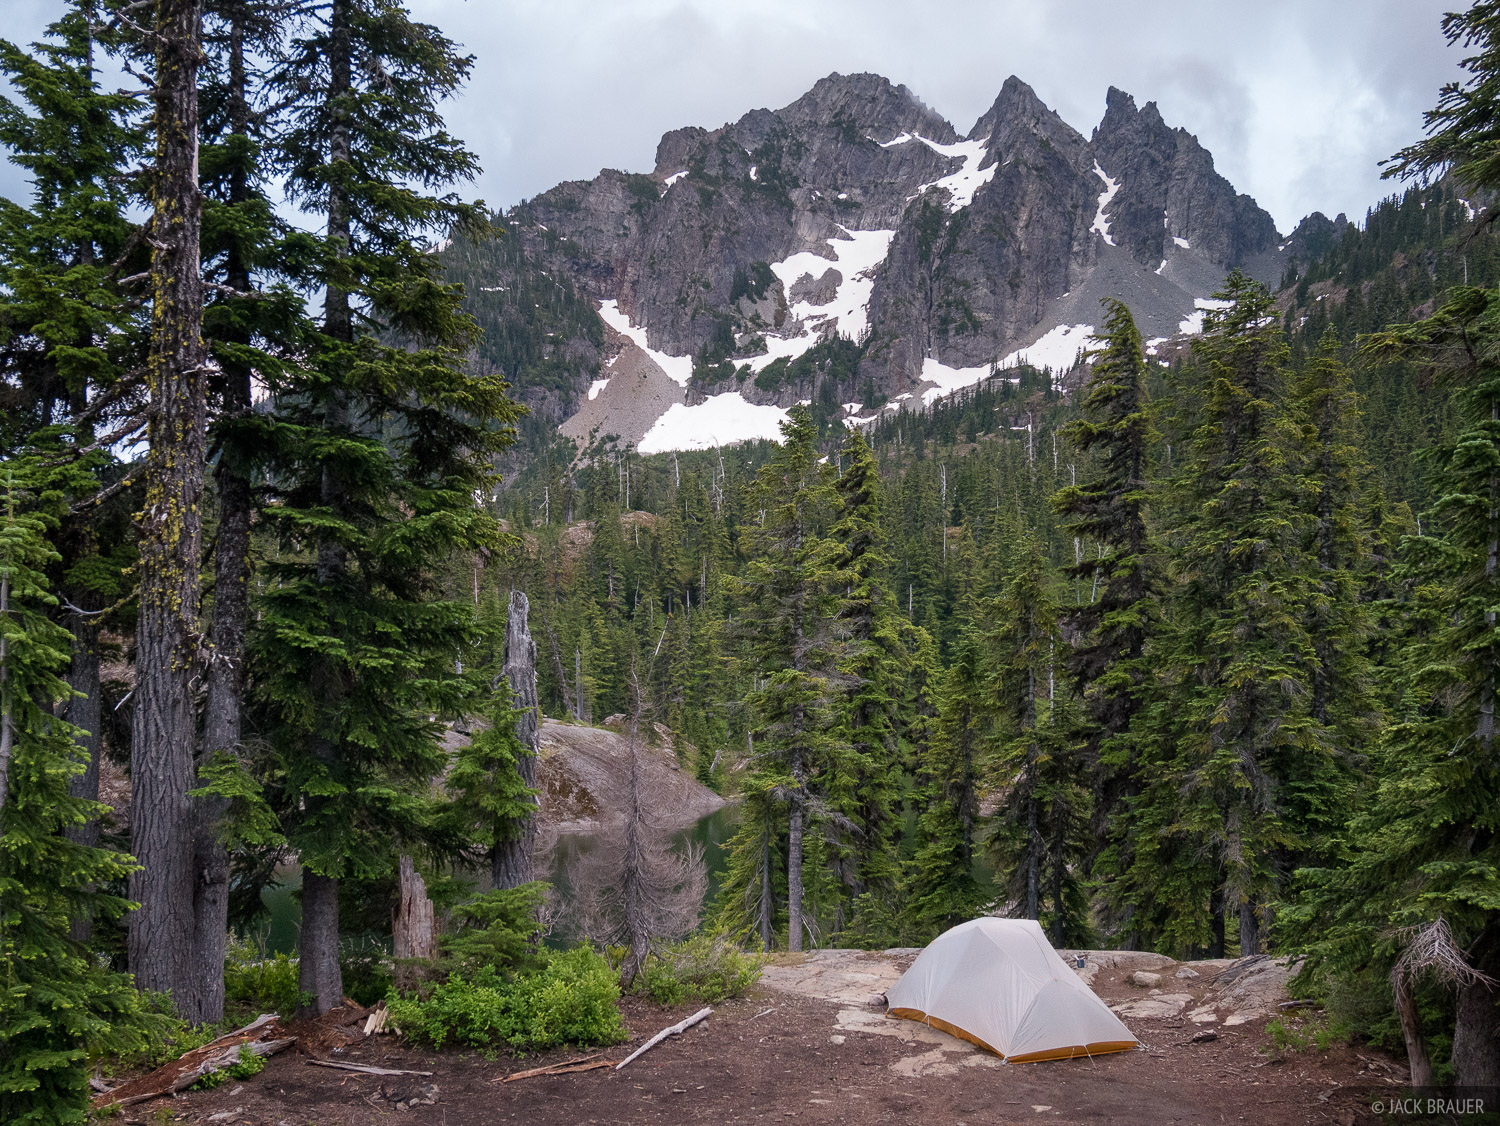 Our first evening of our 5-day trek in the Alpine Lakes Wilderness of central Washington, camped at Spectacle Lake.